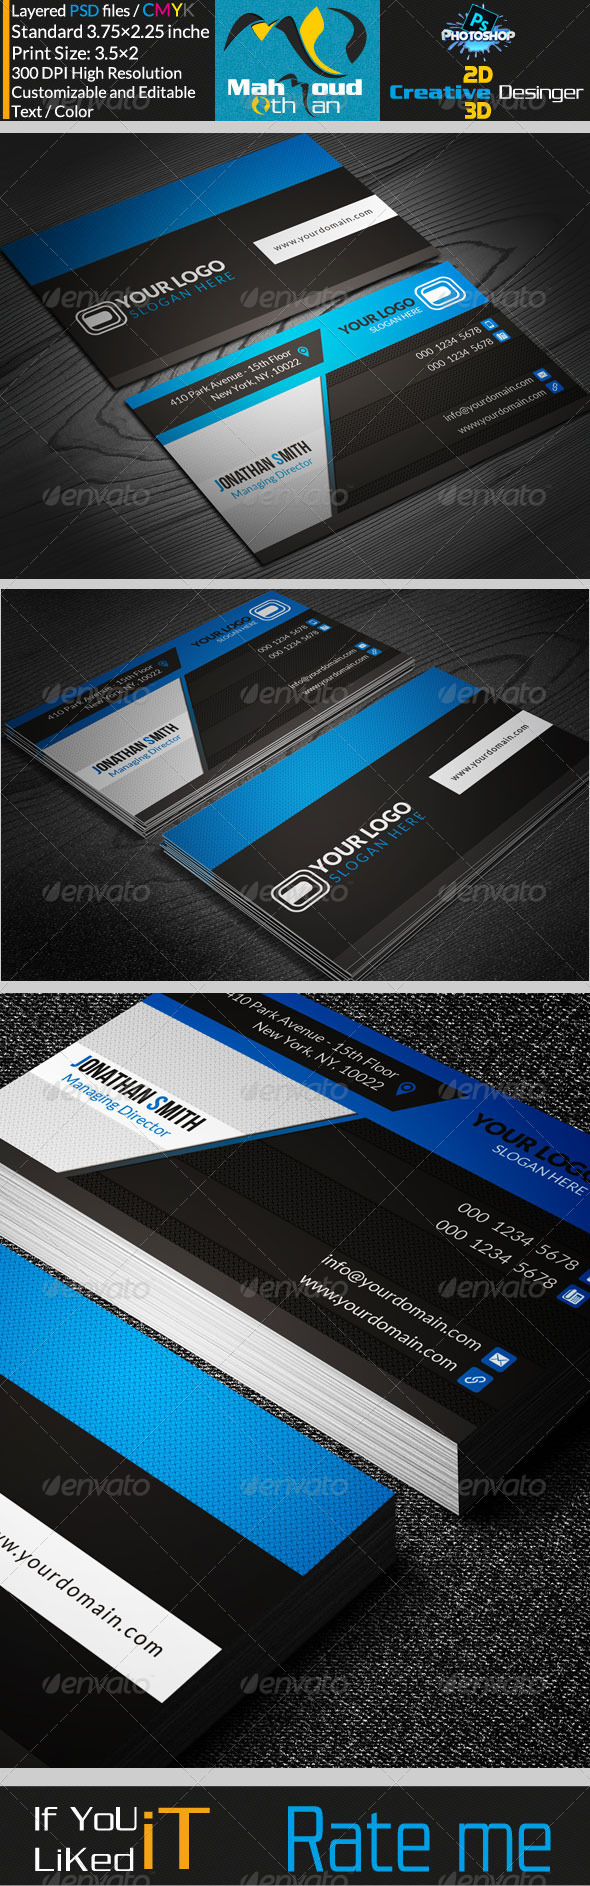 Creative studio Business Card 03 - Corporate Business Cards